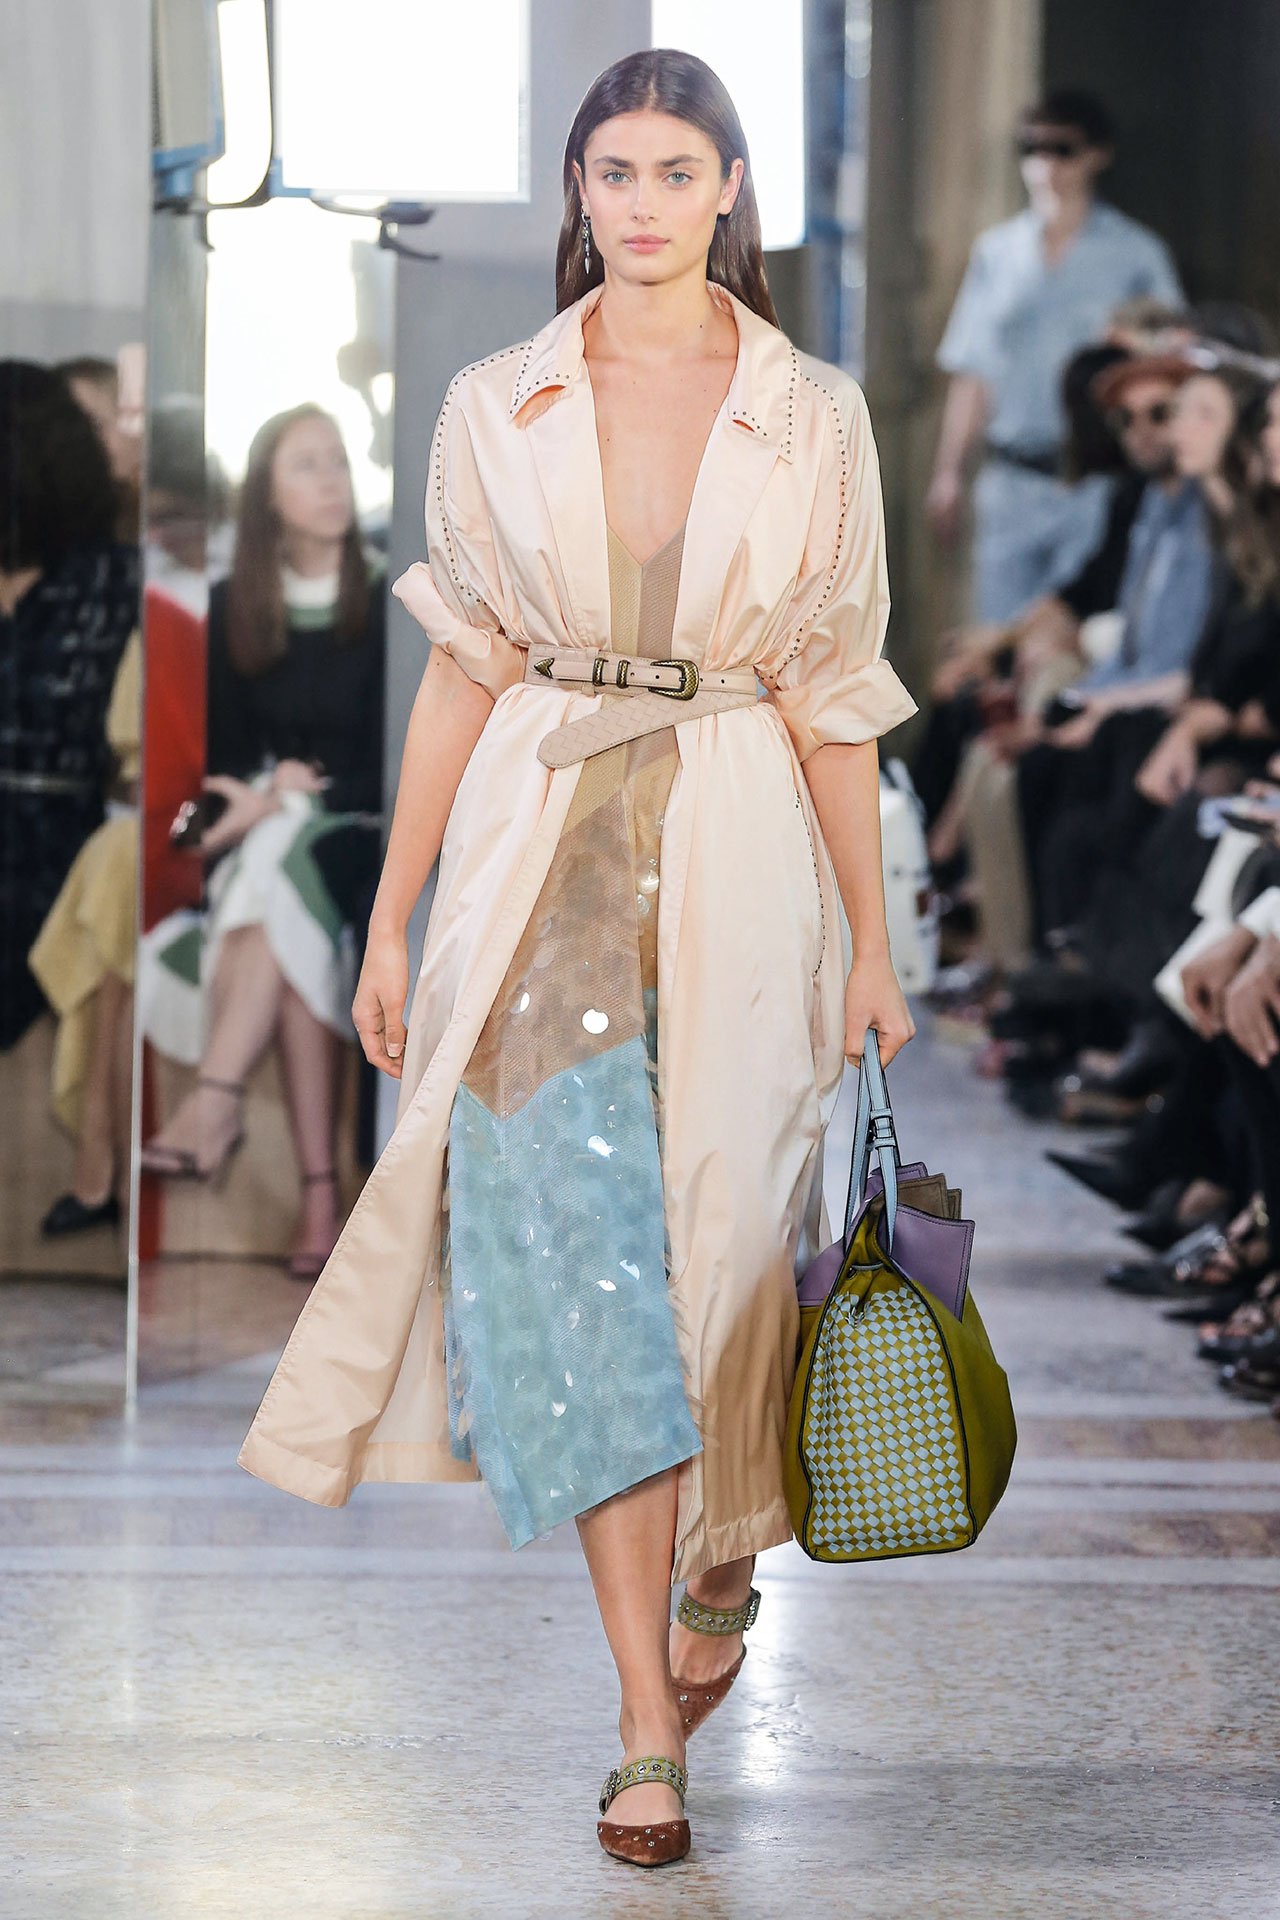 milan-fashion-week-trends-spring-2018-serious-sequins-bottega-veneta-look-40-taylor-hill